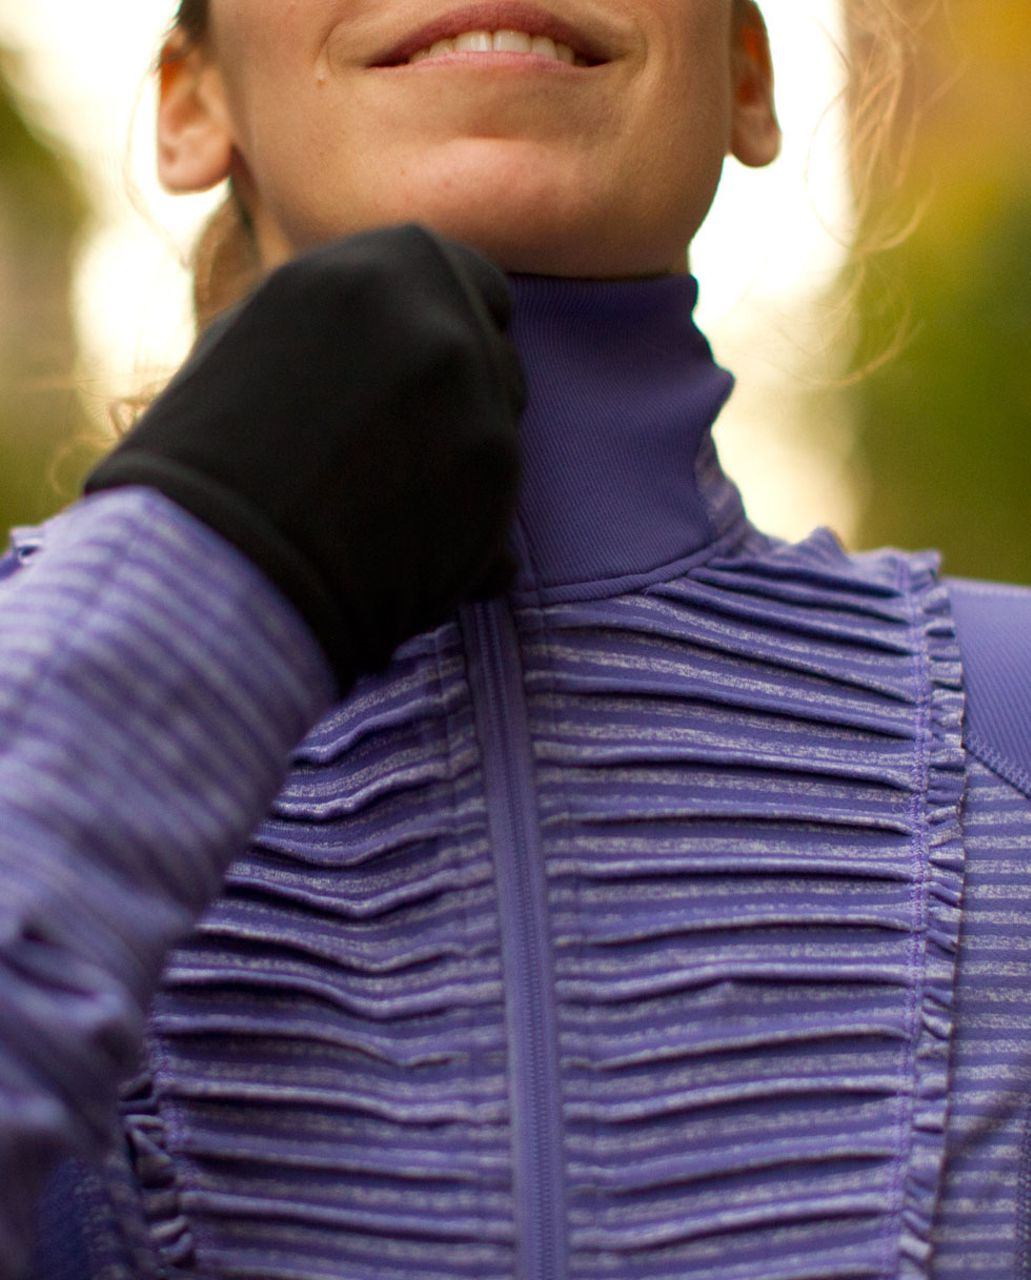 Lululemon Run:  Your Heart Out Pullover - Persian Purple Heathered Persian Purple Classic Stripe